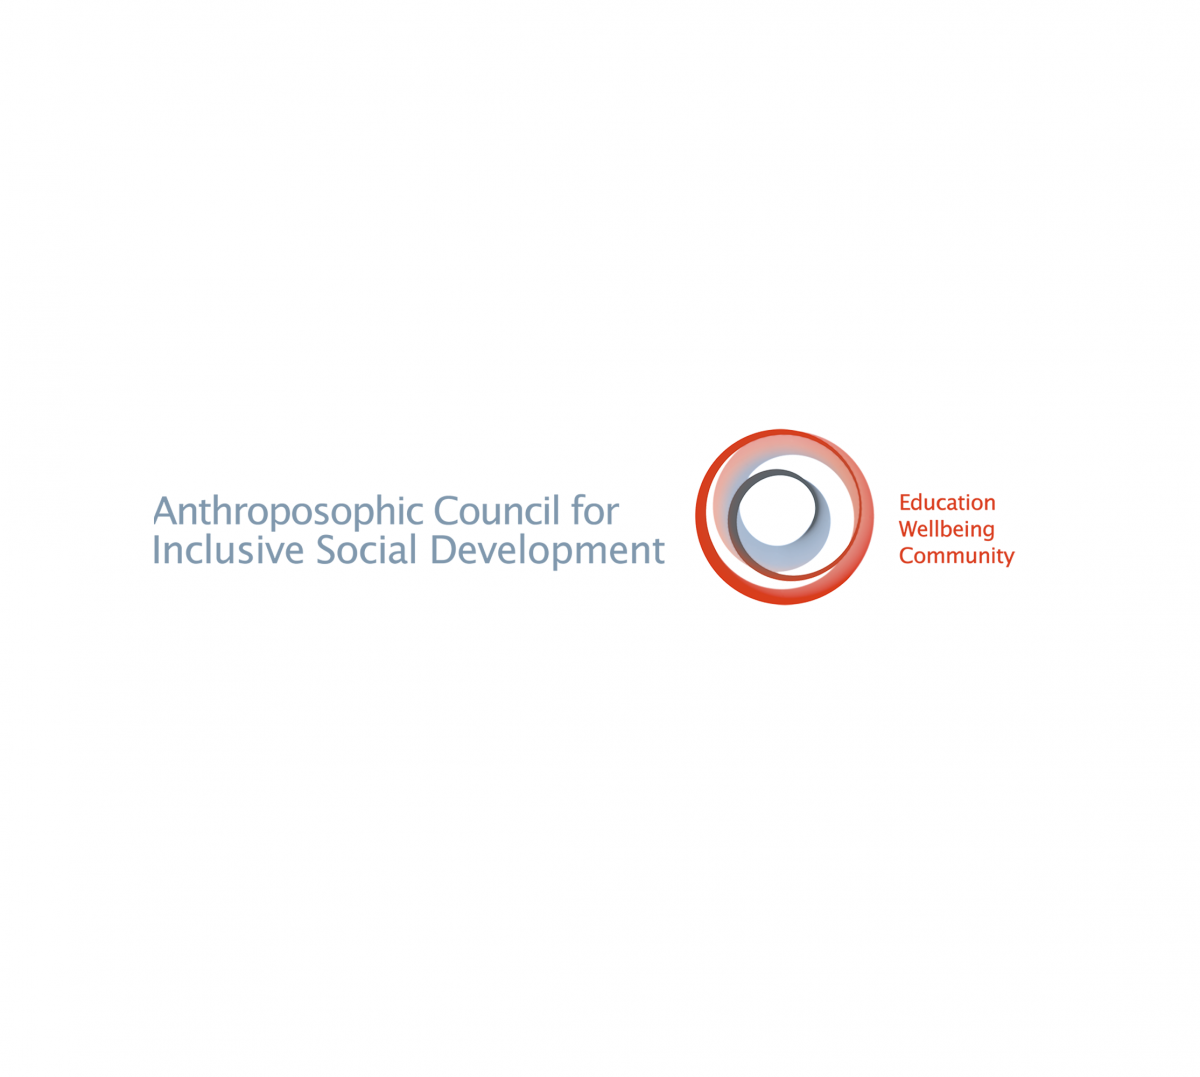 Anthroposophic Council for Inclusive Social Development